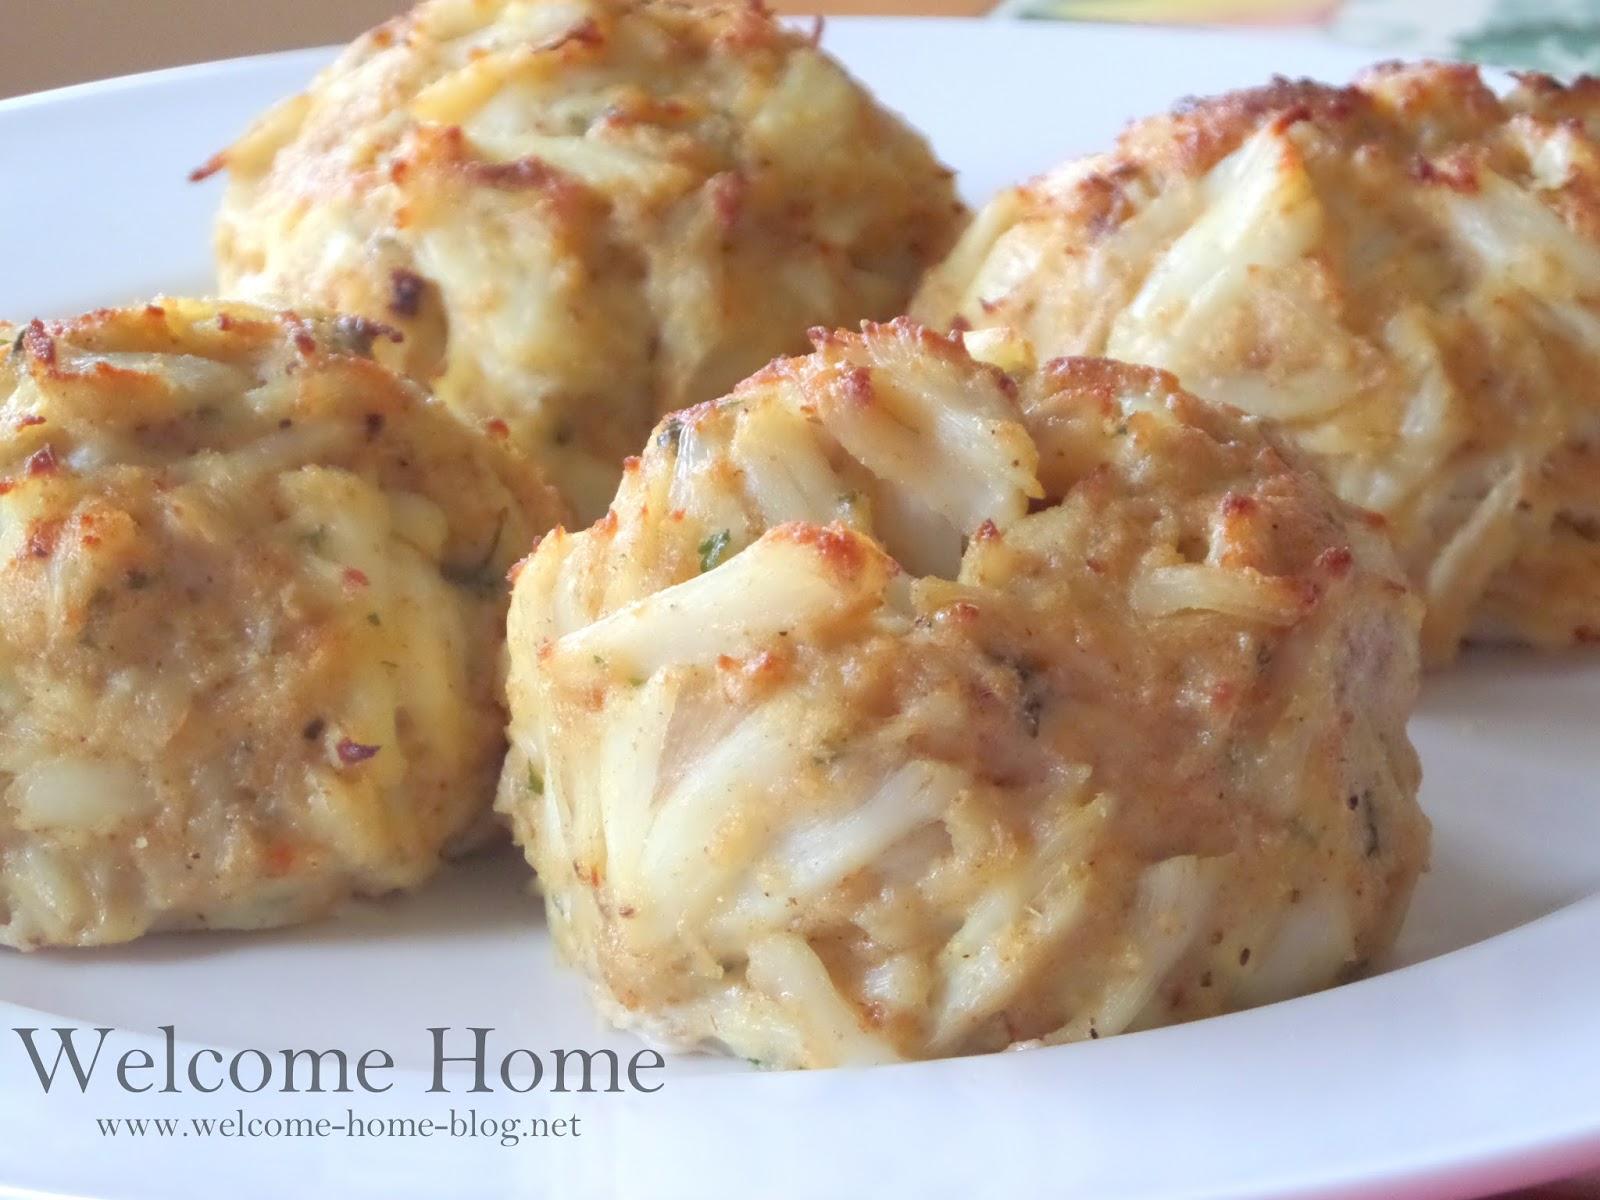 Welcome Home Blog My Jumbo Lump Maryland Crab Cakes